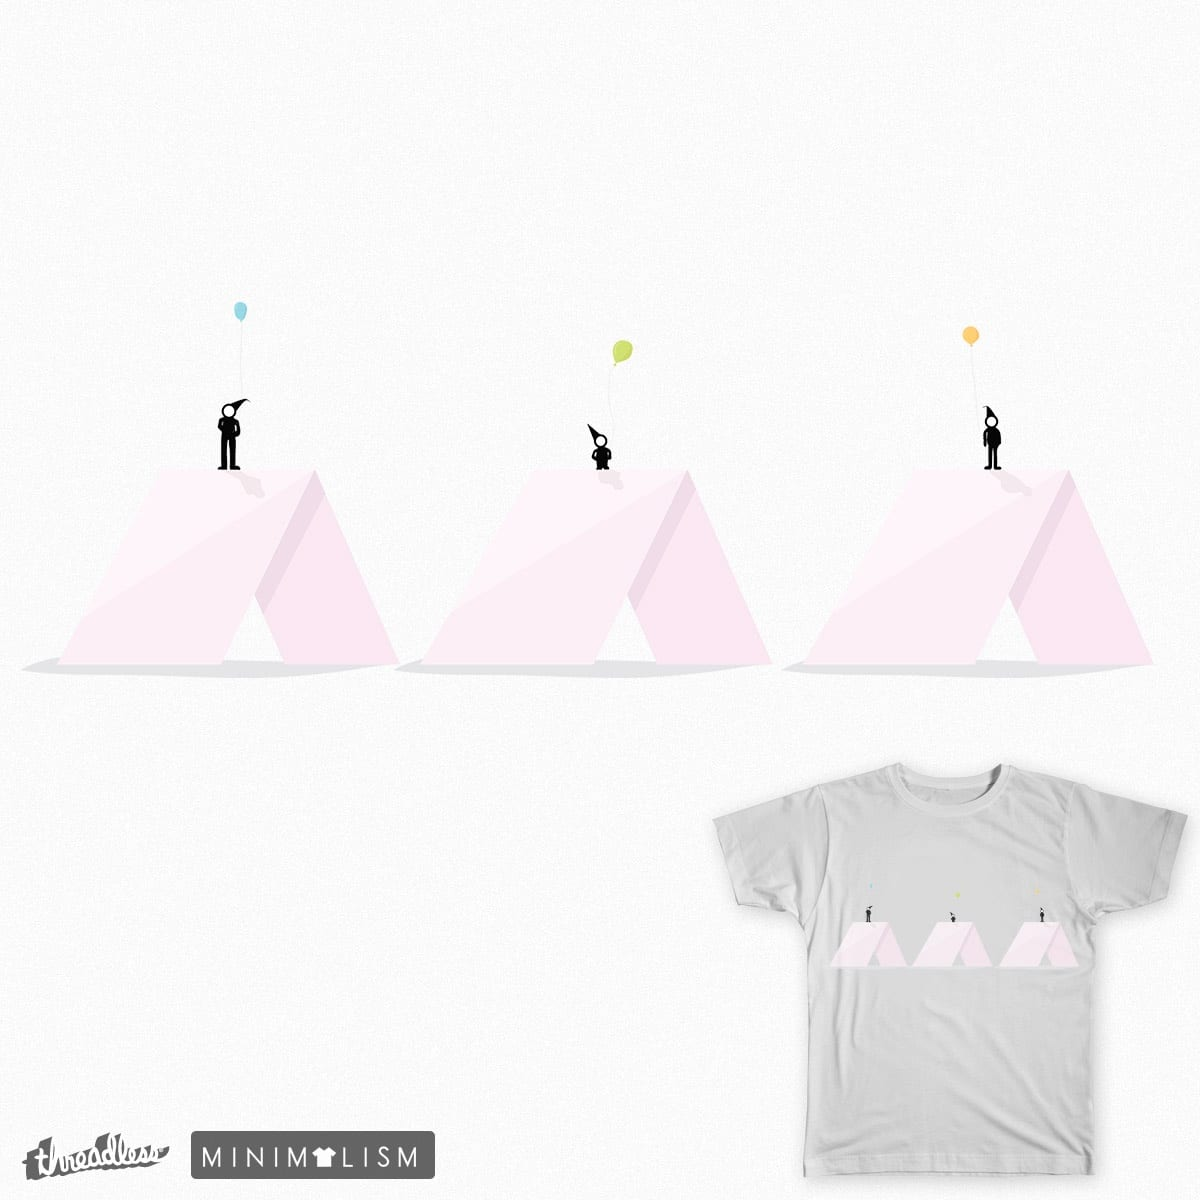 Why Am I Not Home by ducklord on Threadless